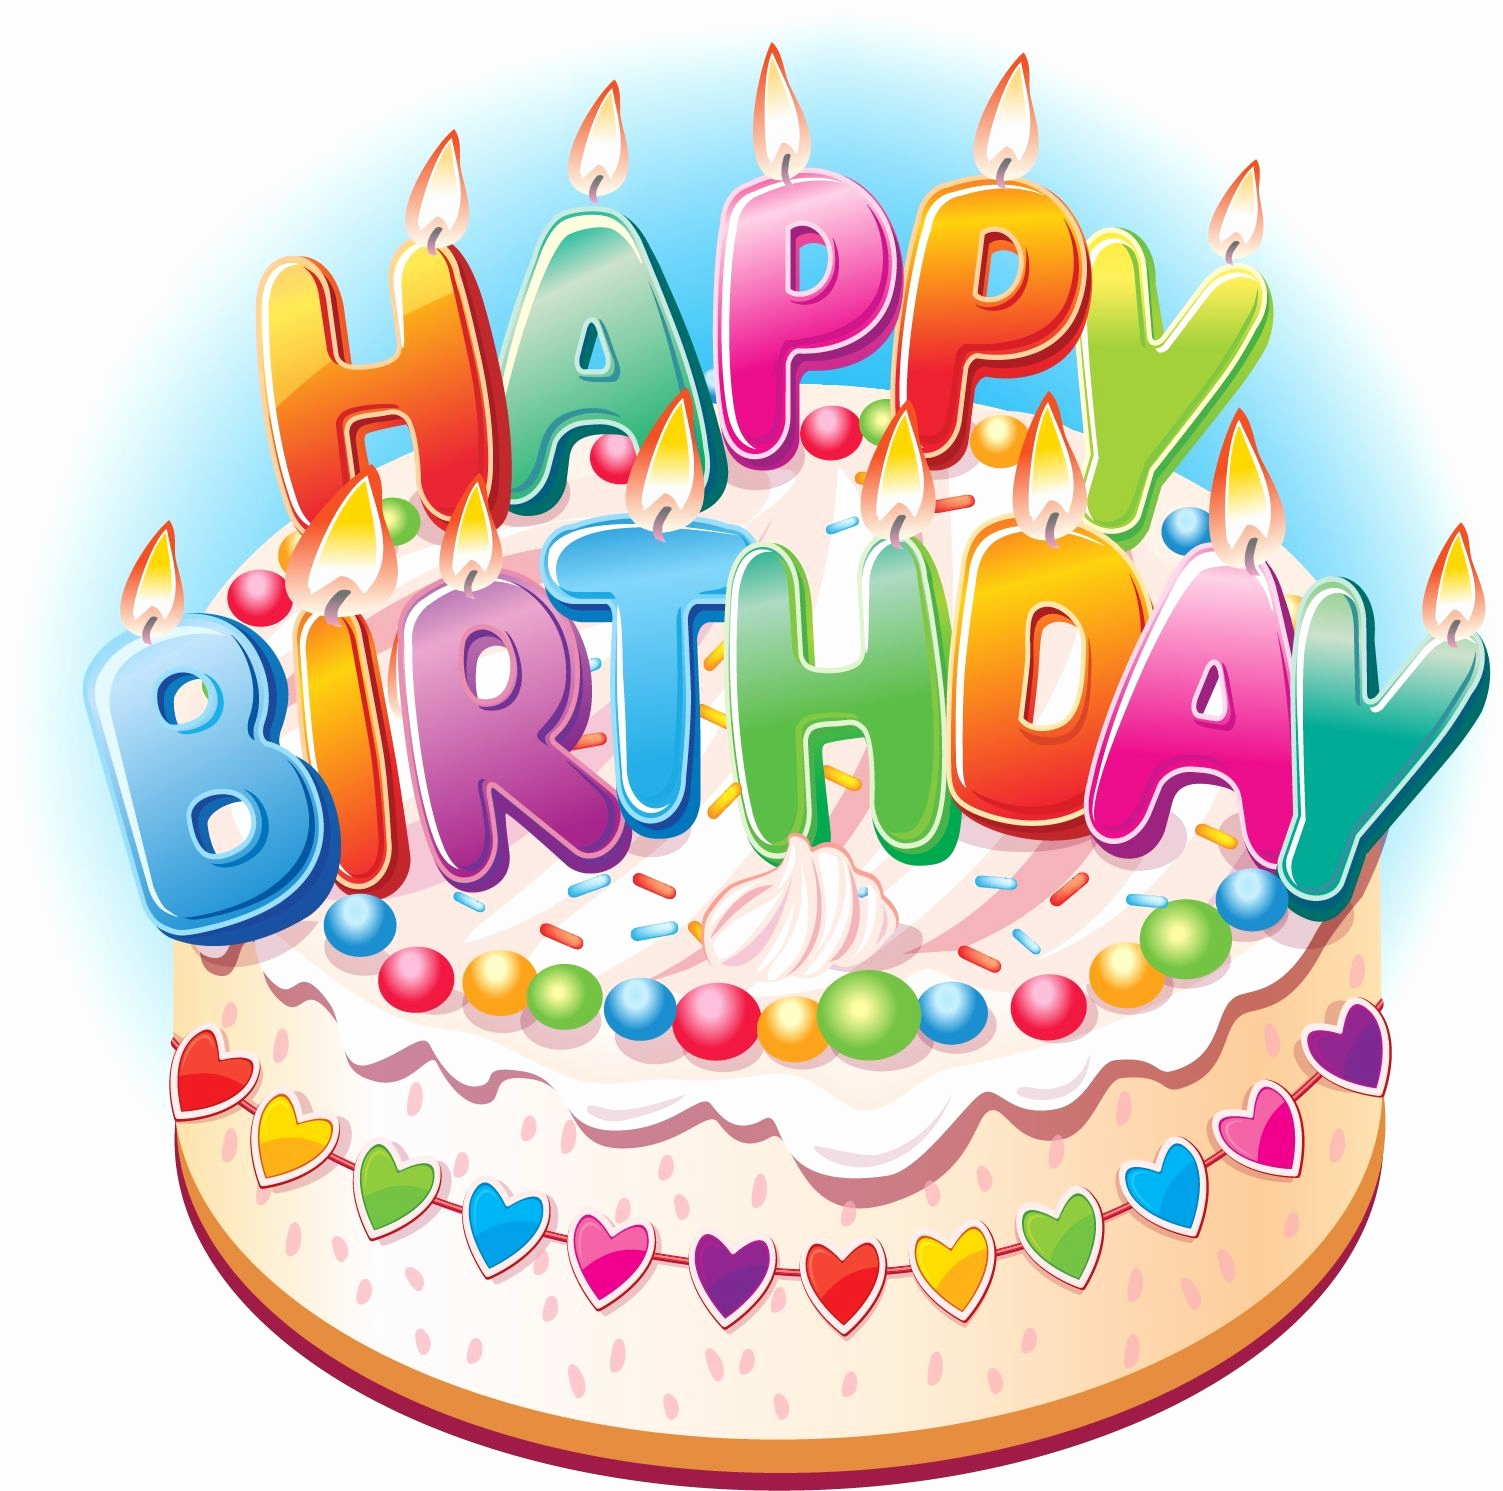 free animated birthday images ; animated-birthday-cards-for-facebook-beautiful-free-happy-birthday-greeting-just-add-the-name-amp-post-it-email-or-of-animated-birthday-cards-for-facebook